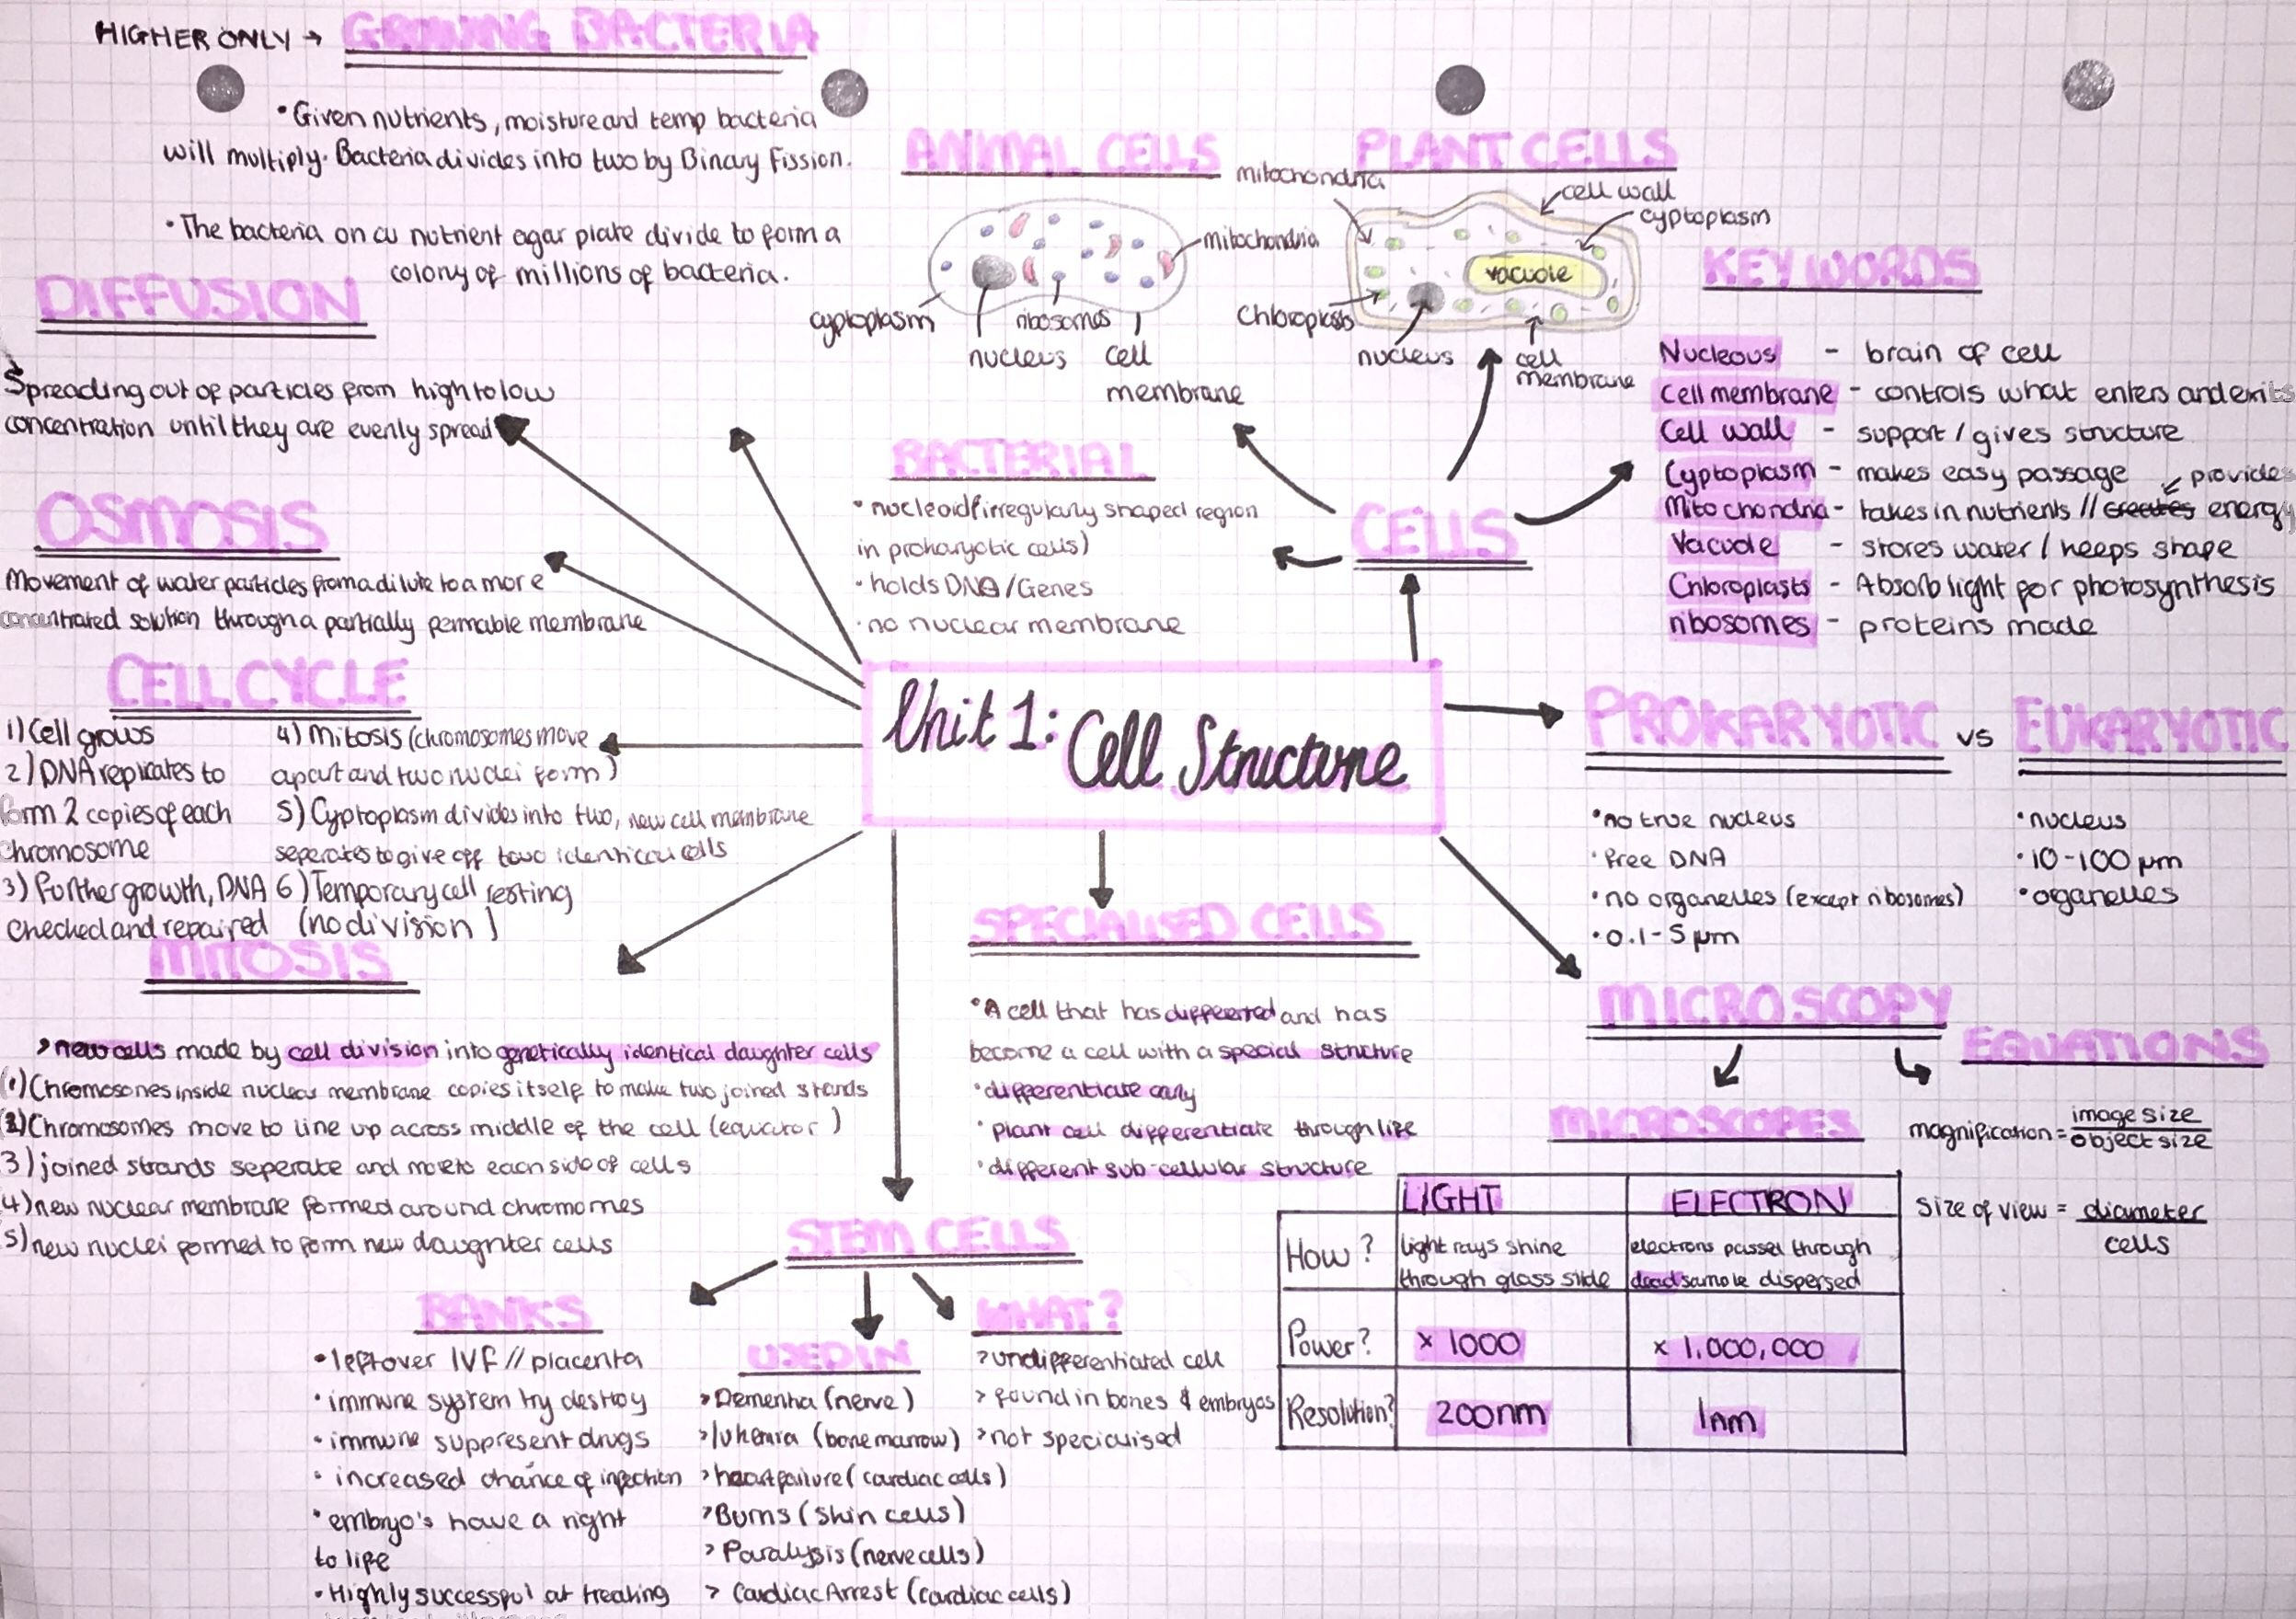 Biology Cell Structure Mind Map | Gcse science revision ...